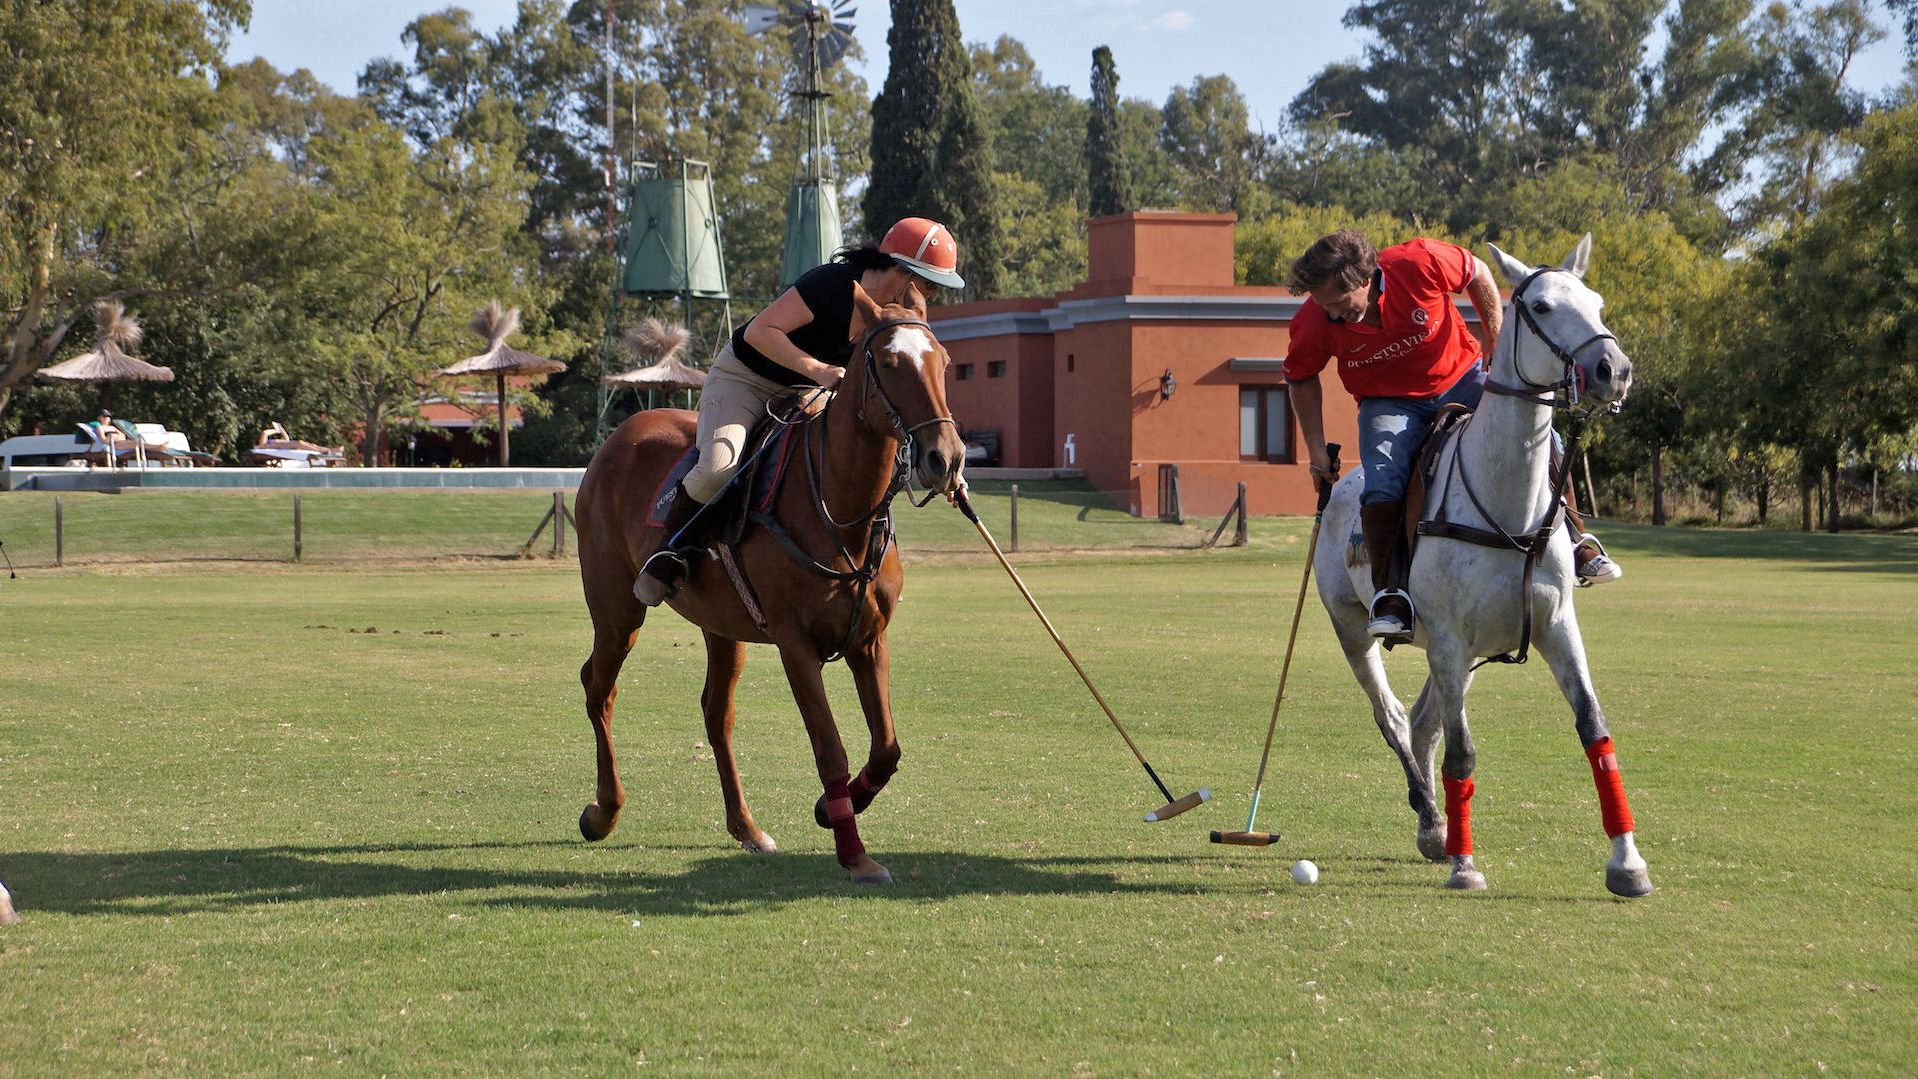 Several people on horses with polo sticks